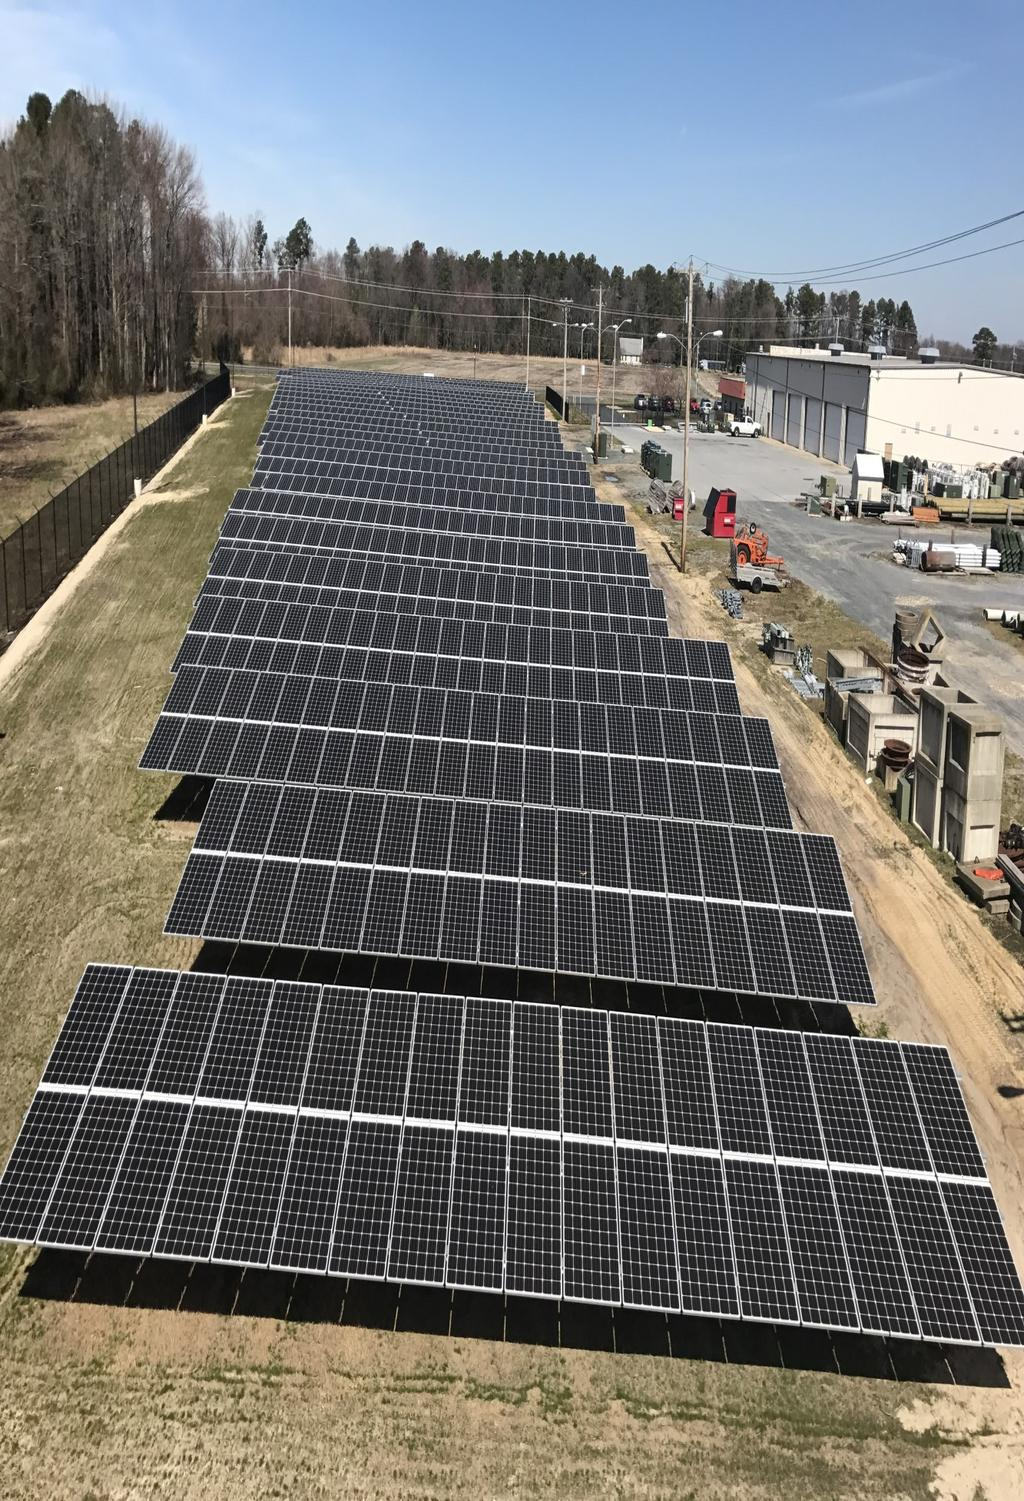 Solar Array Project Completed The City of Seaford has completed a solar array located at 8000 Herring Run Road that was designed to offset electrical cost for the City of Seaford Waste Water